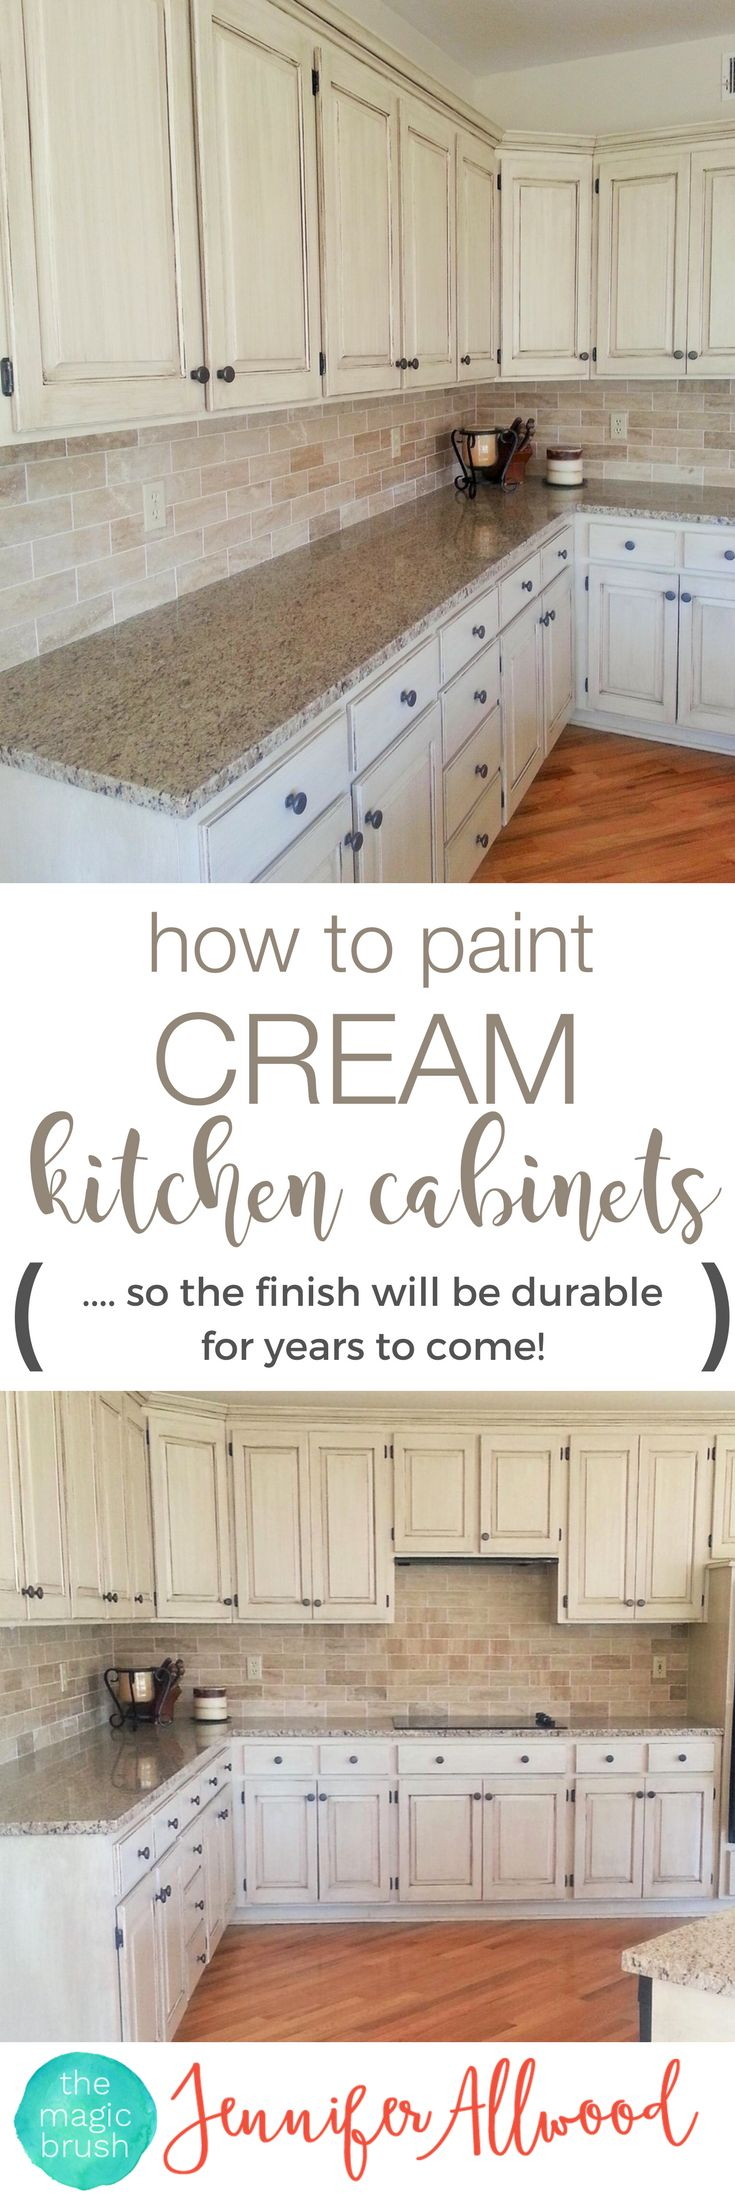 How To Paint Cream Kitchen Cabinets So The Finish Will Be Durable! Cabinet  Painting Tips